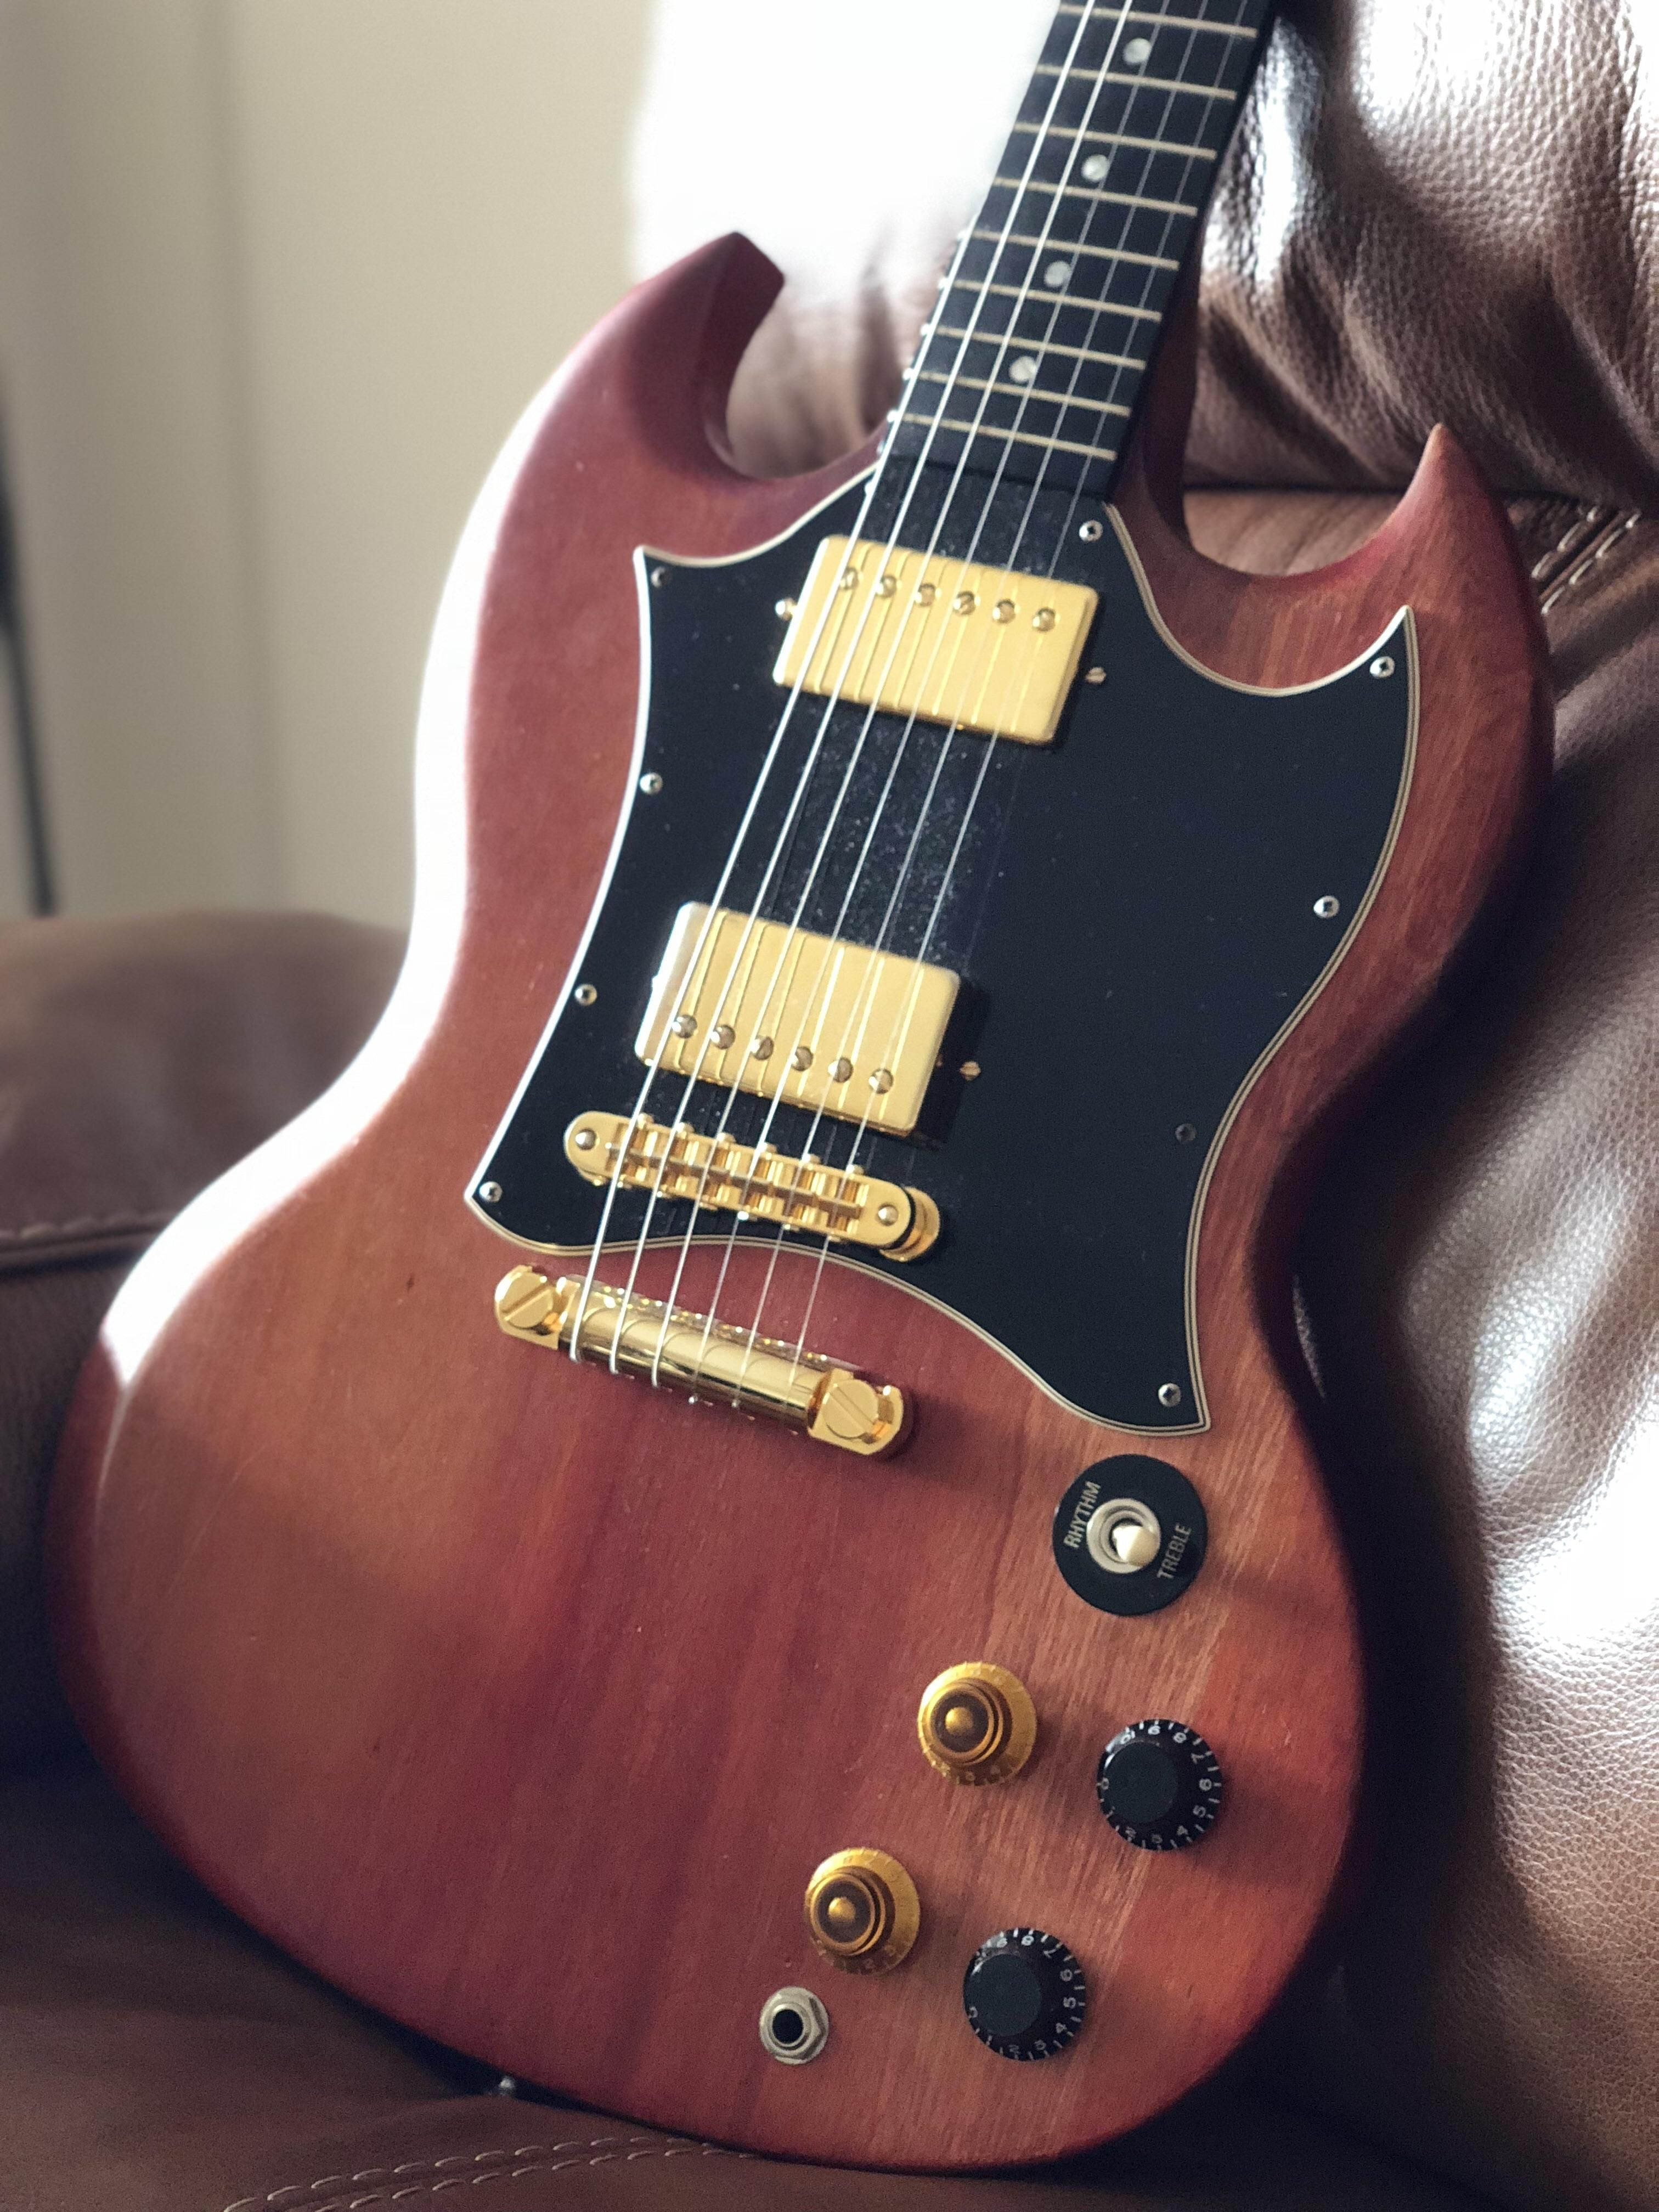 My pride and joy  2004 Gibson SG special faded  13 years